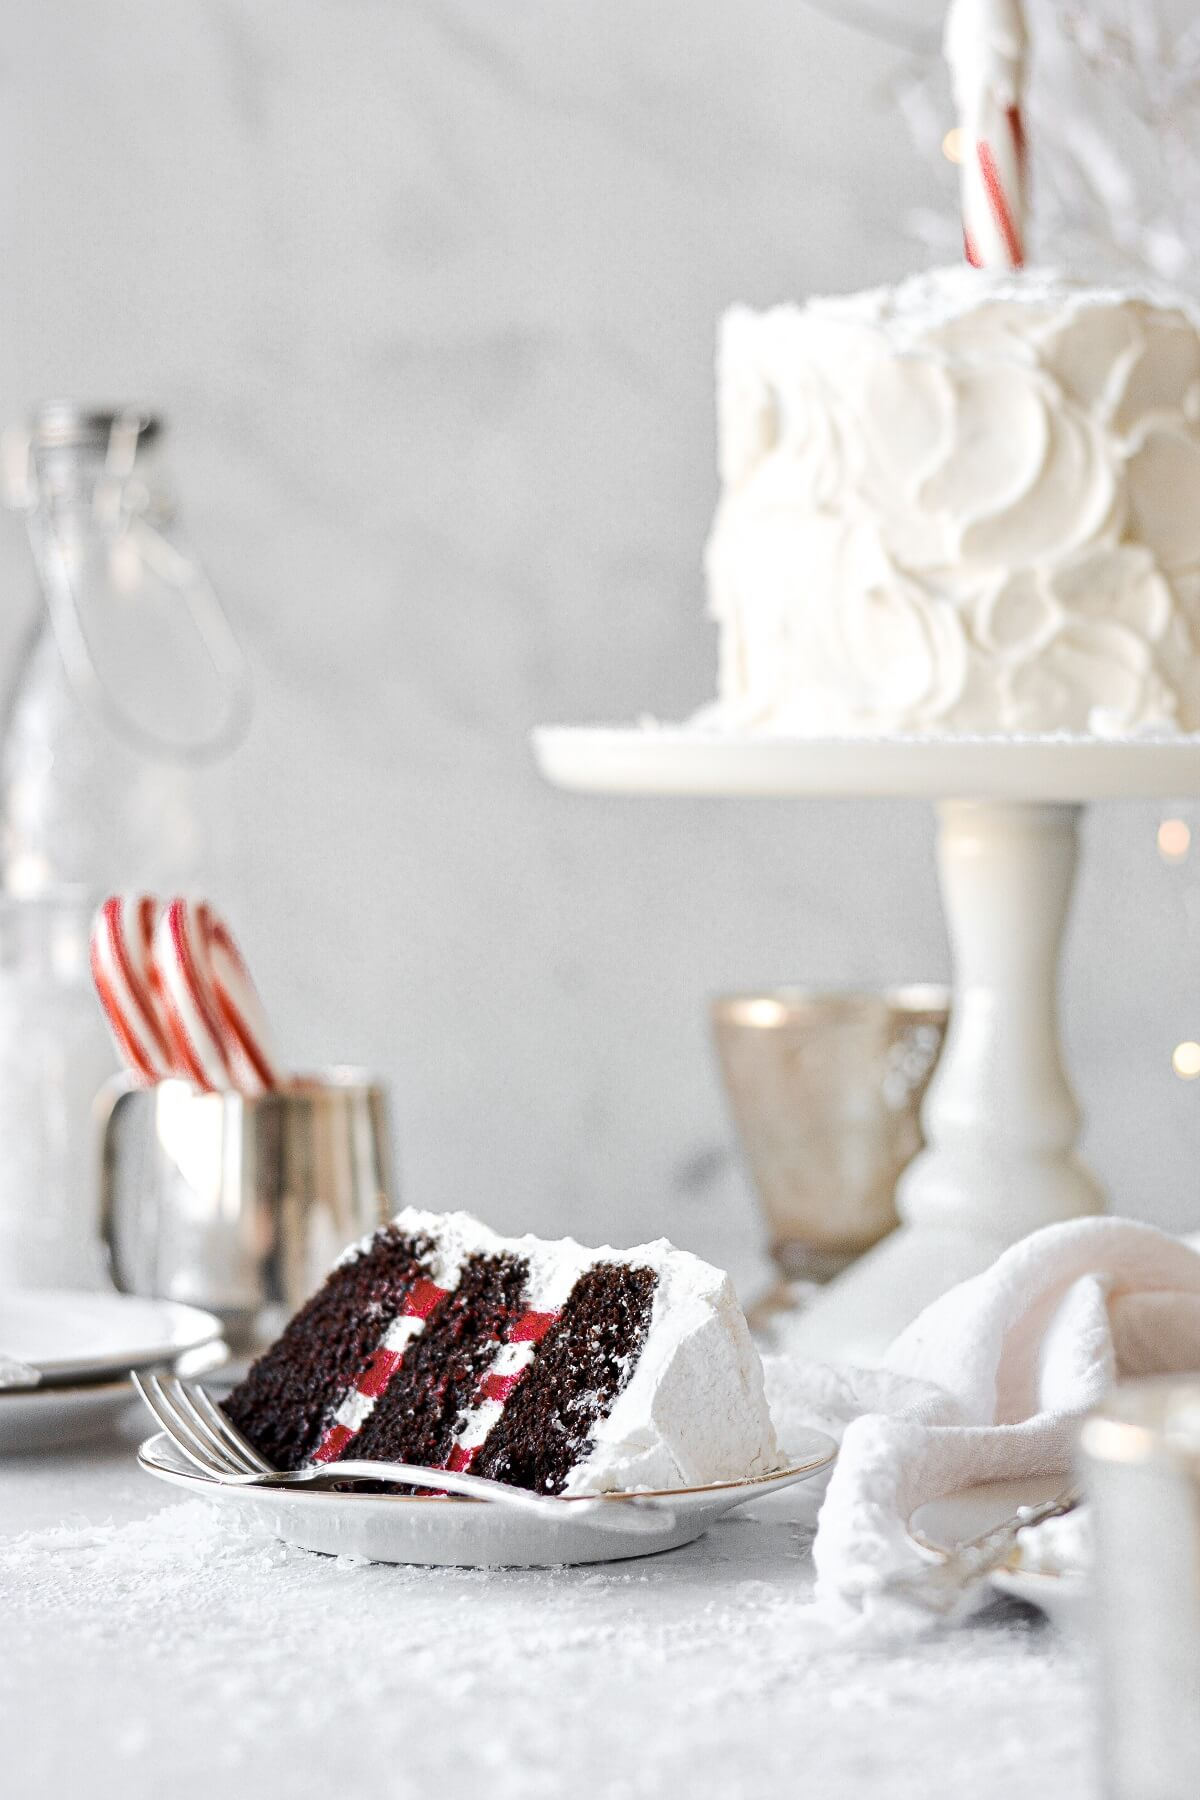 A slice of chocolate cake, with red and white striped buttercream, and a candy cane North Pole on top.